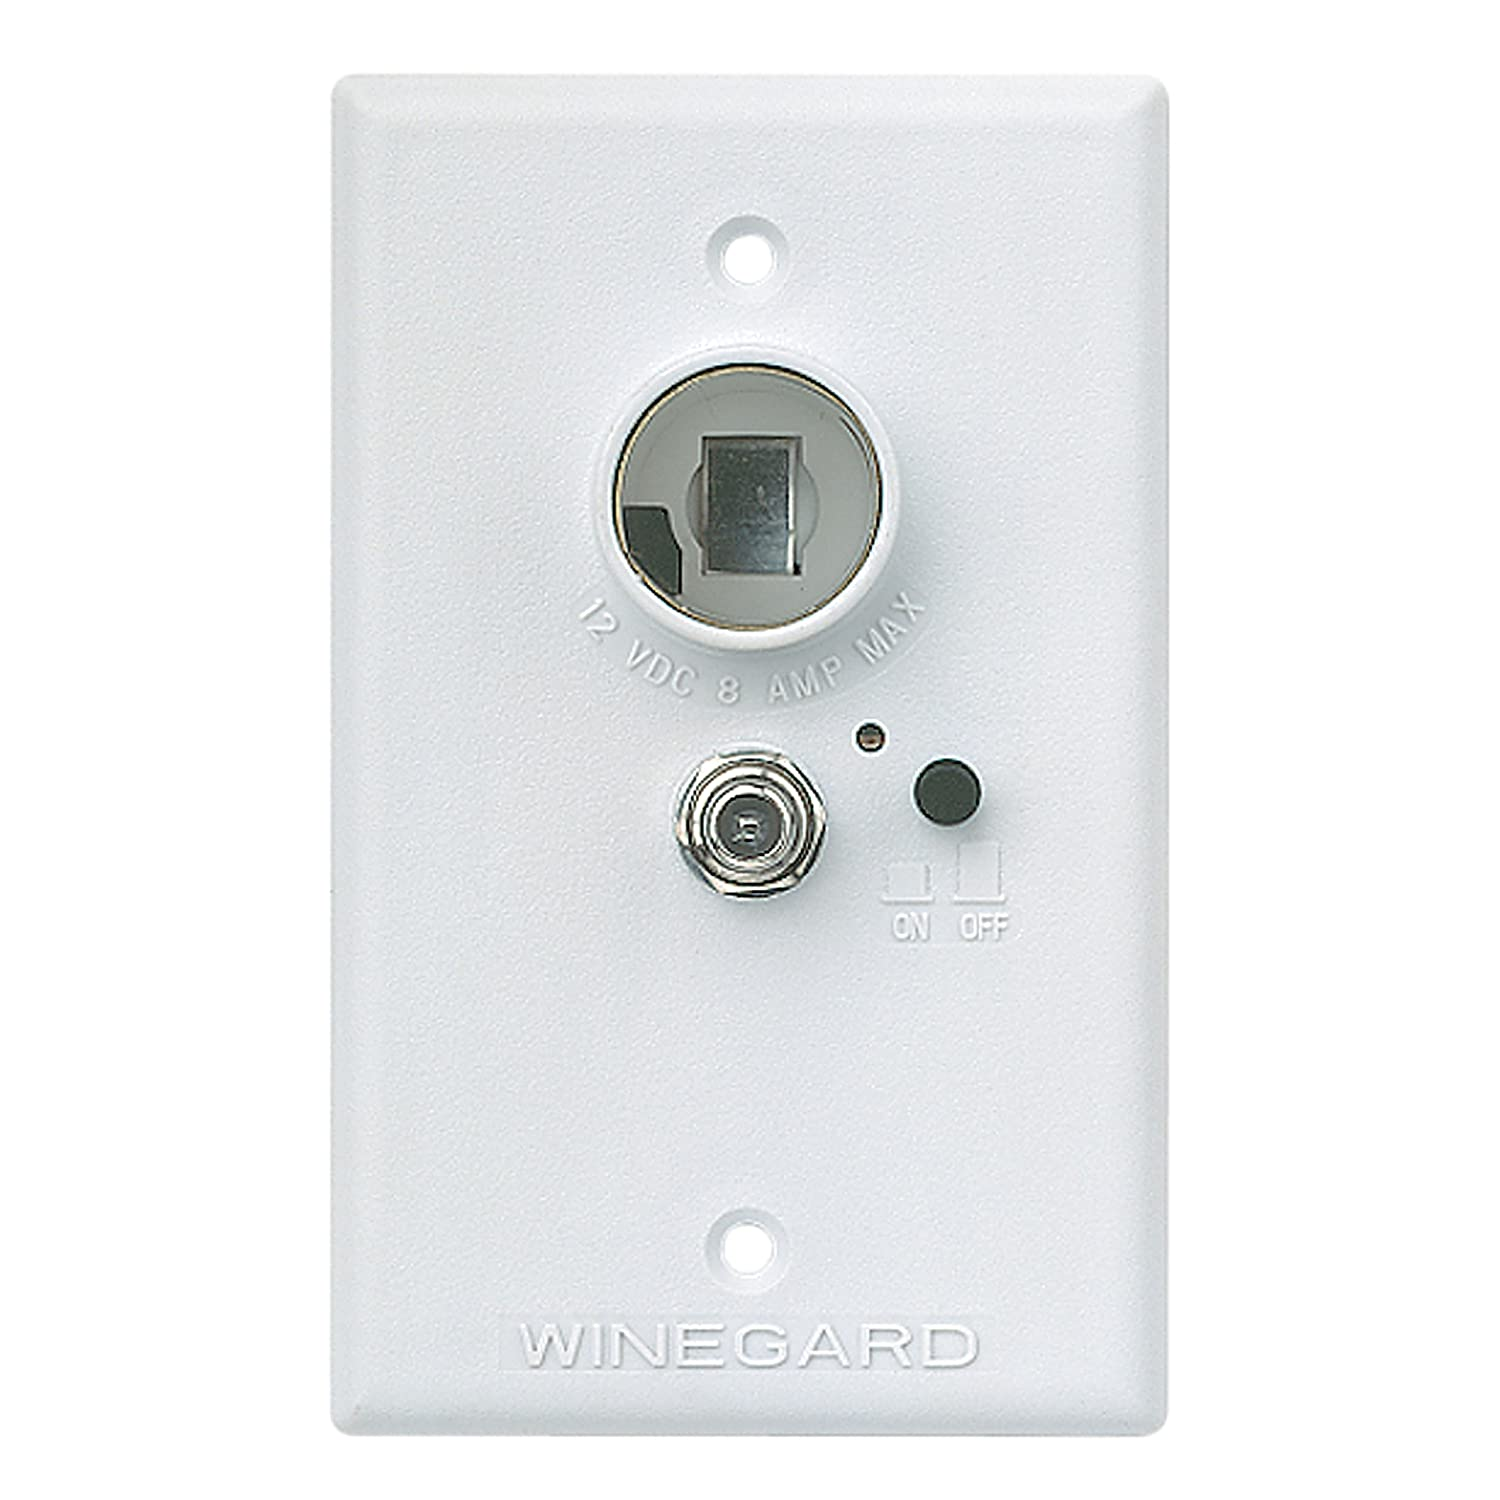 81WJRG%2BAb6L._SL1500_ amazon com winegard rv 7042 wall plate power supply white 30 Amp RV Wiring Diagram at creativeand.co